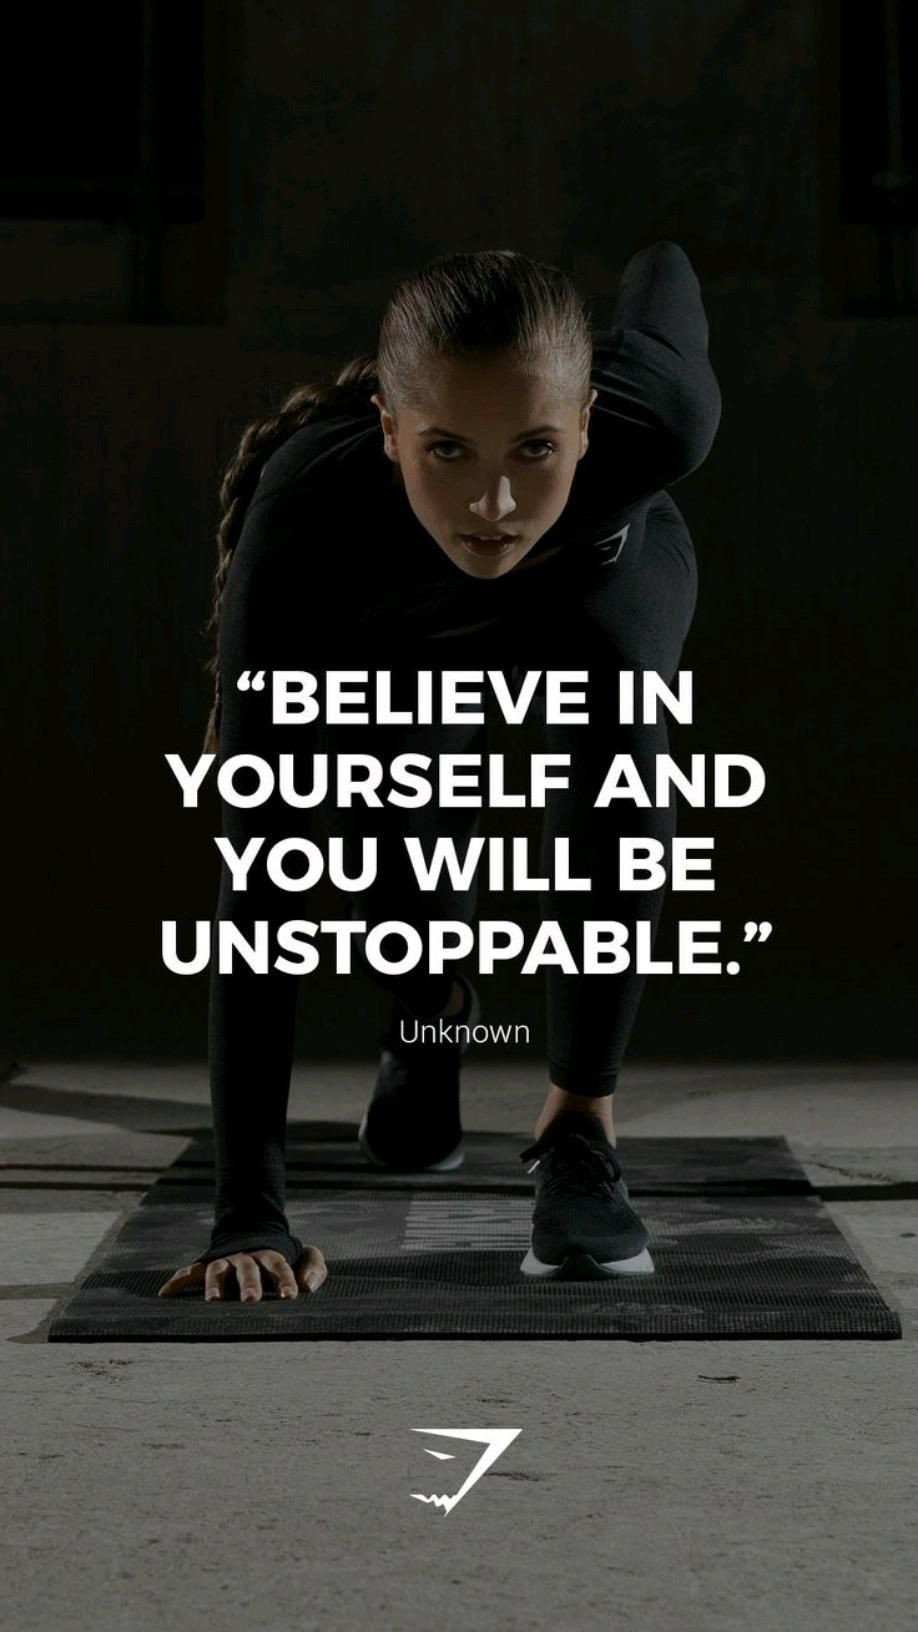 Try your 100% to get what you want - Be Motivated